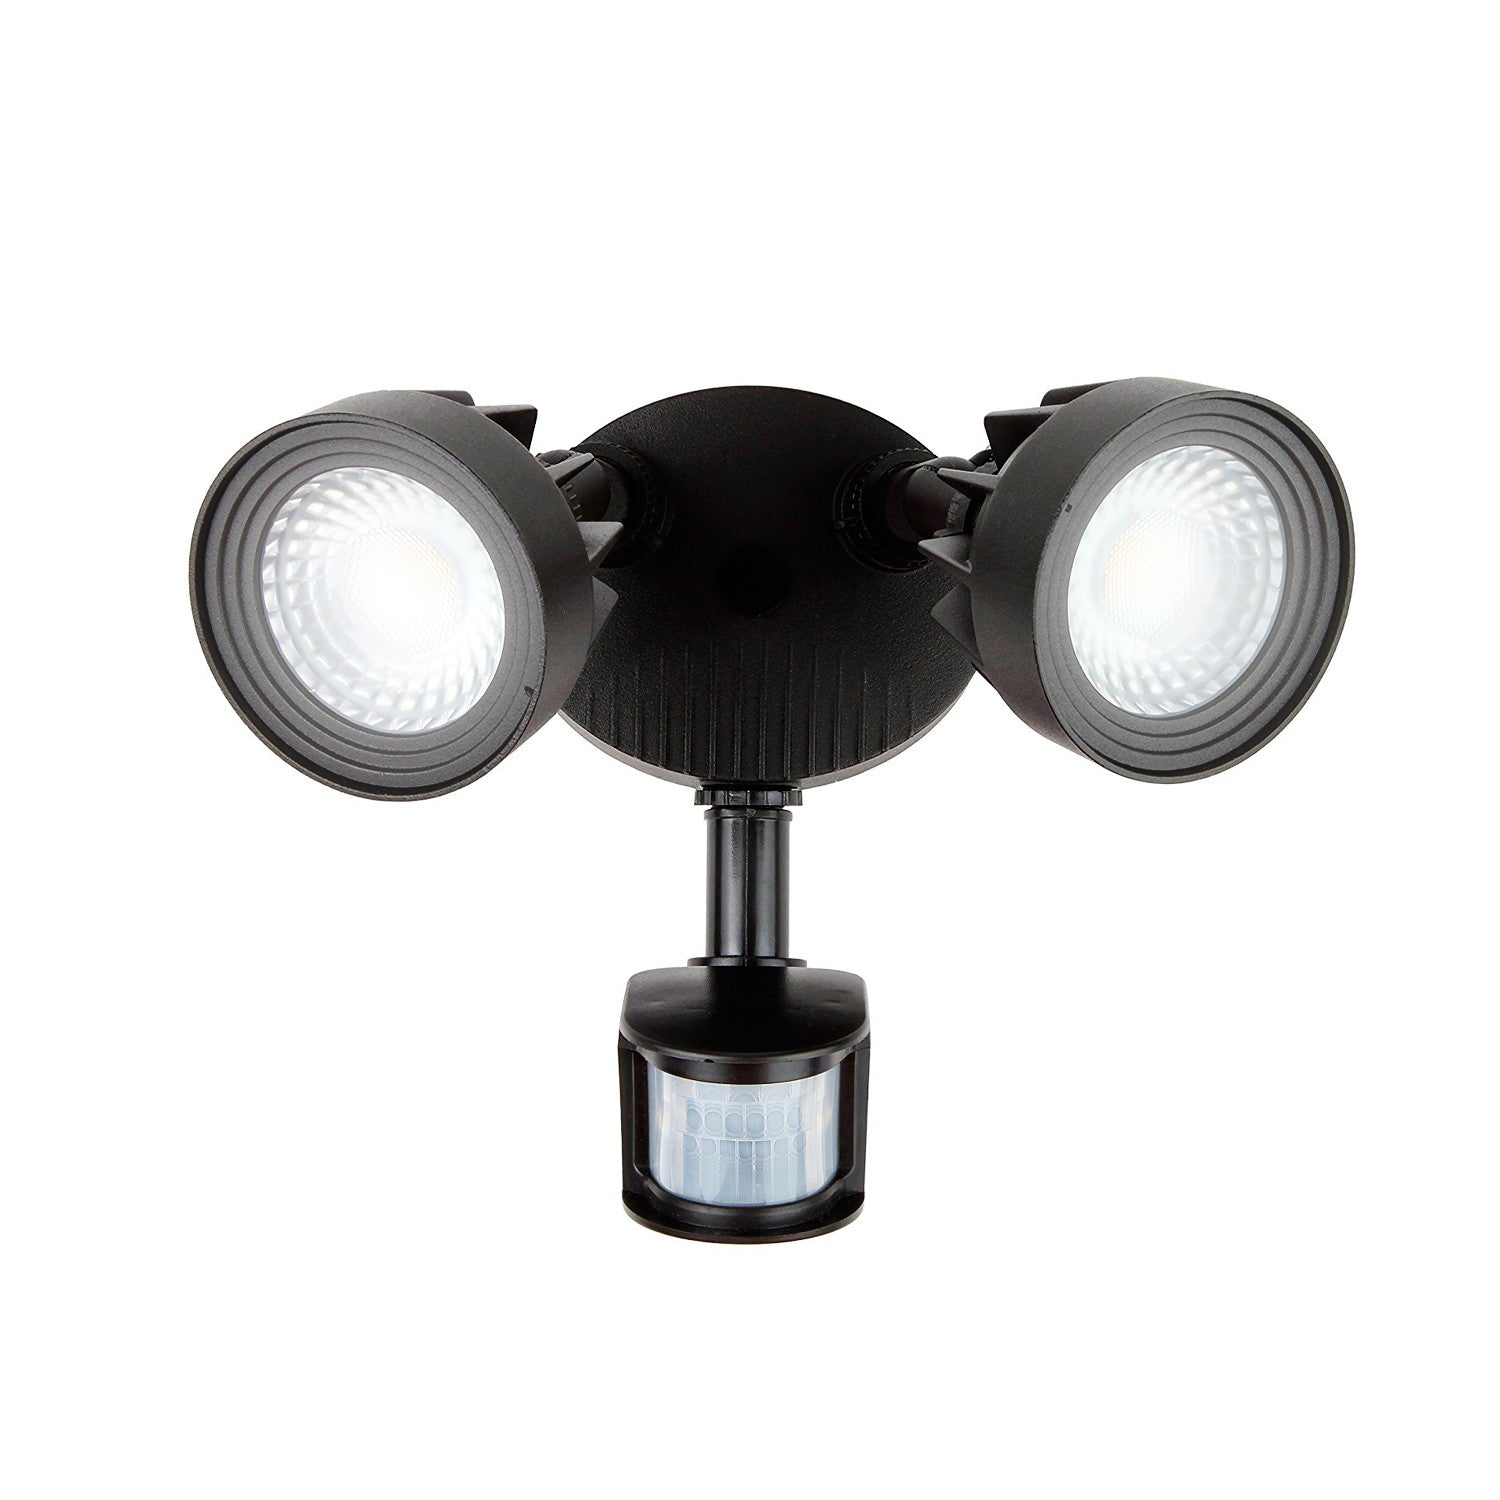 Brightech store lightpro led security light super bright brightech store lightpro led security light super bright energy saver 21 watts 3 motion sensor time settings dusk to dawn automatic activation mozeypictures Images